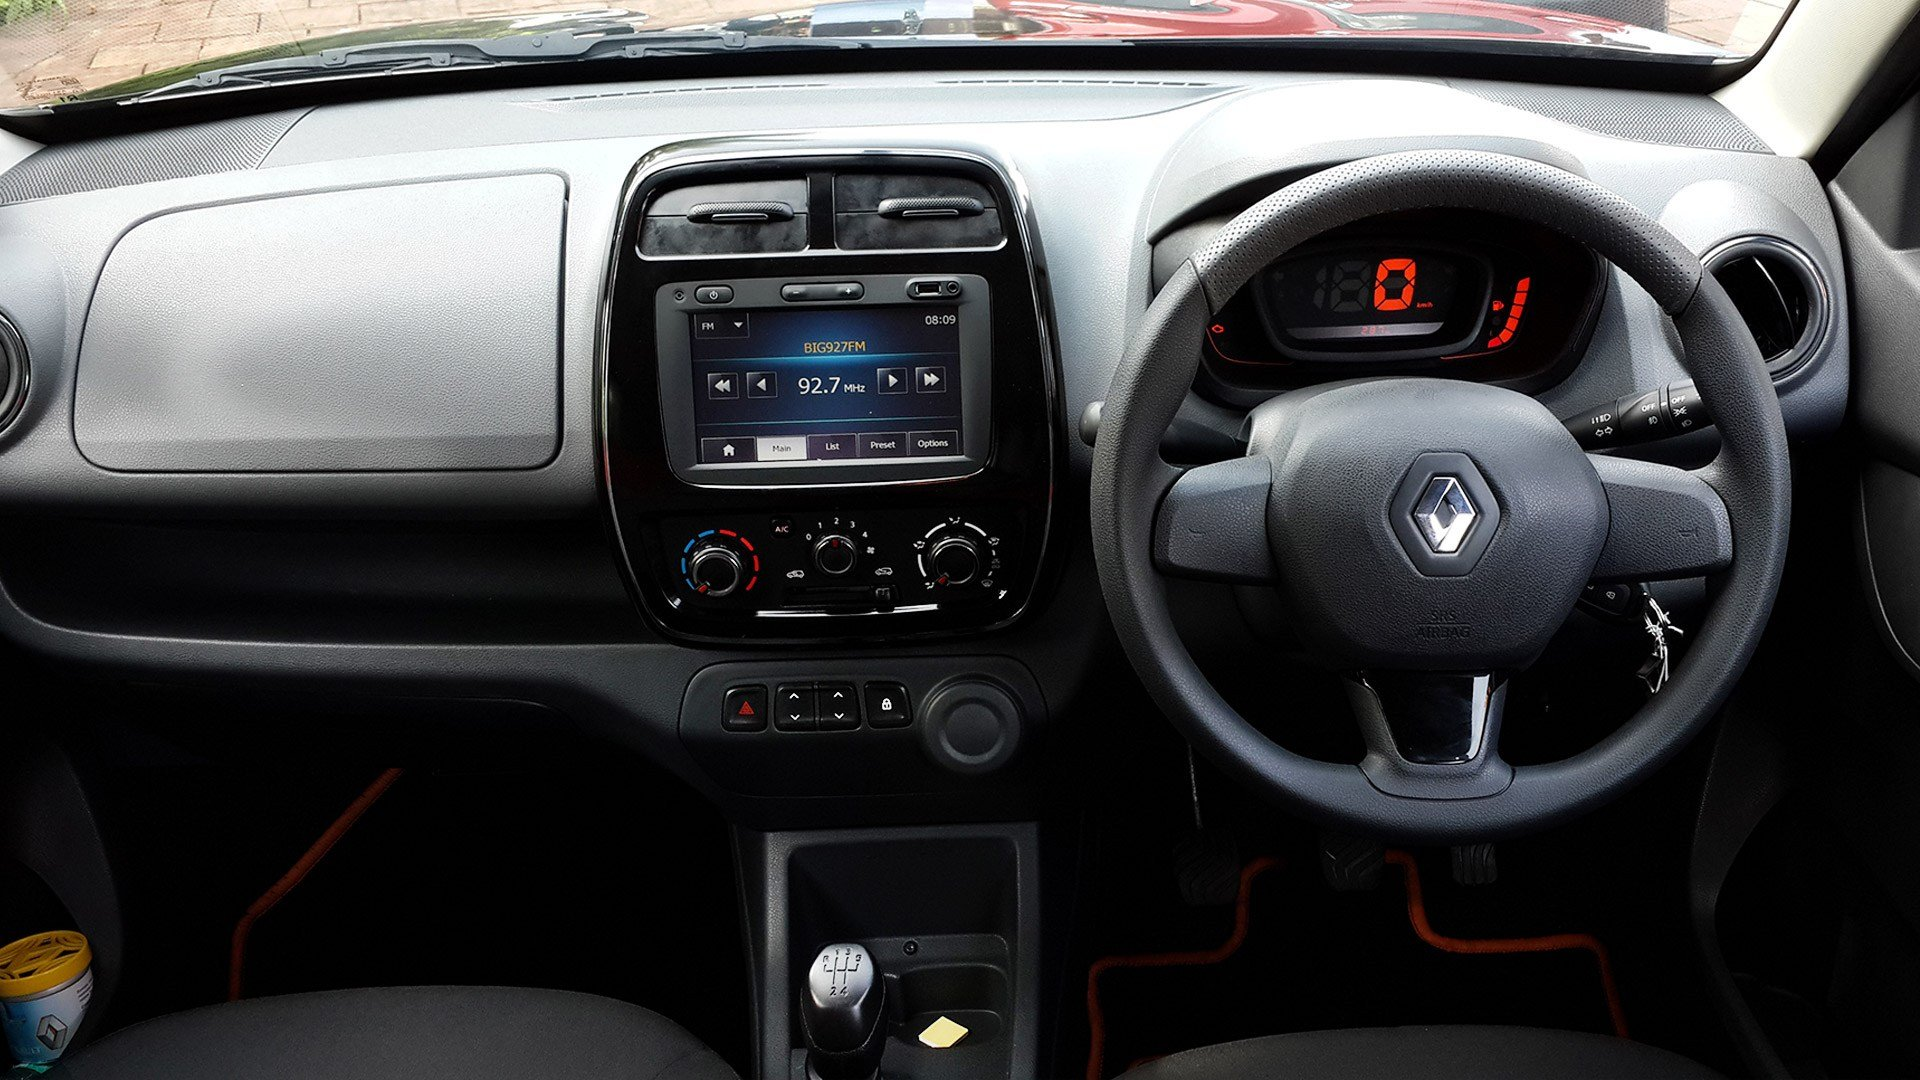 New Renault Kwid 2015 Std Exterior Car Photos Overdrive On This Month